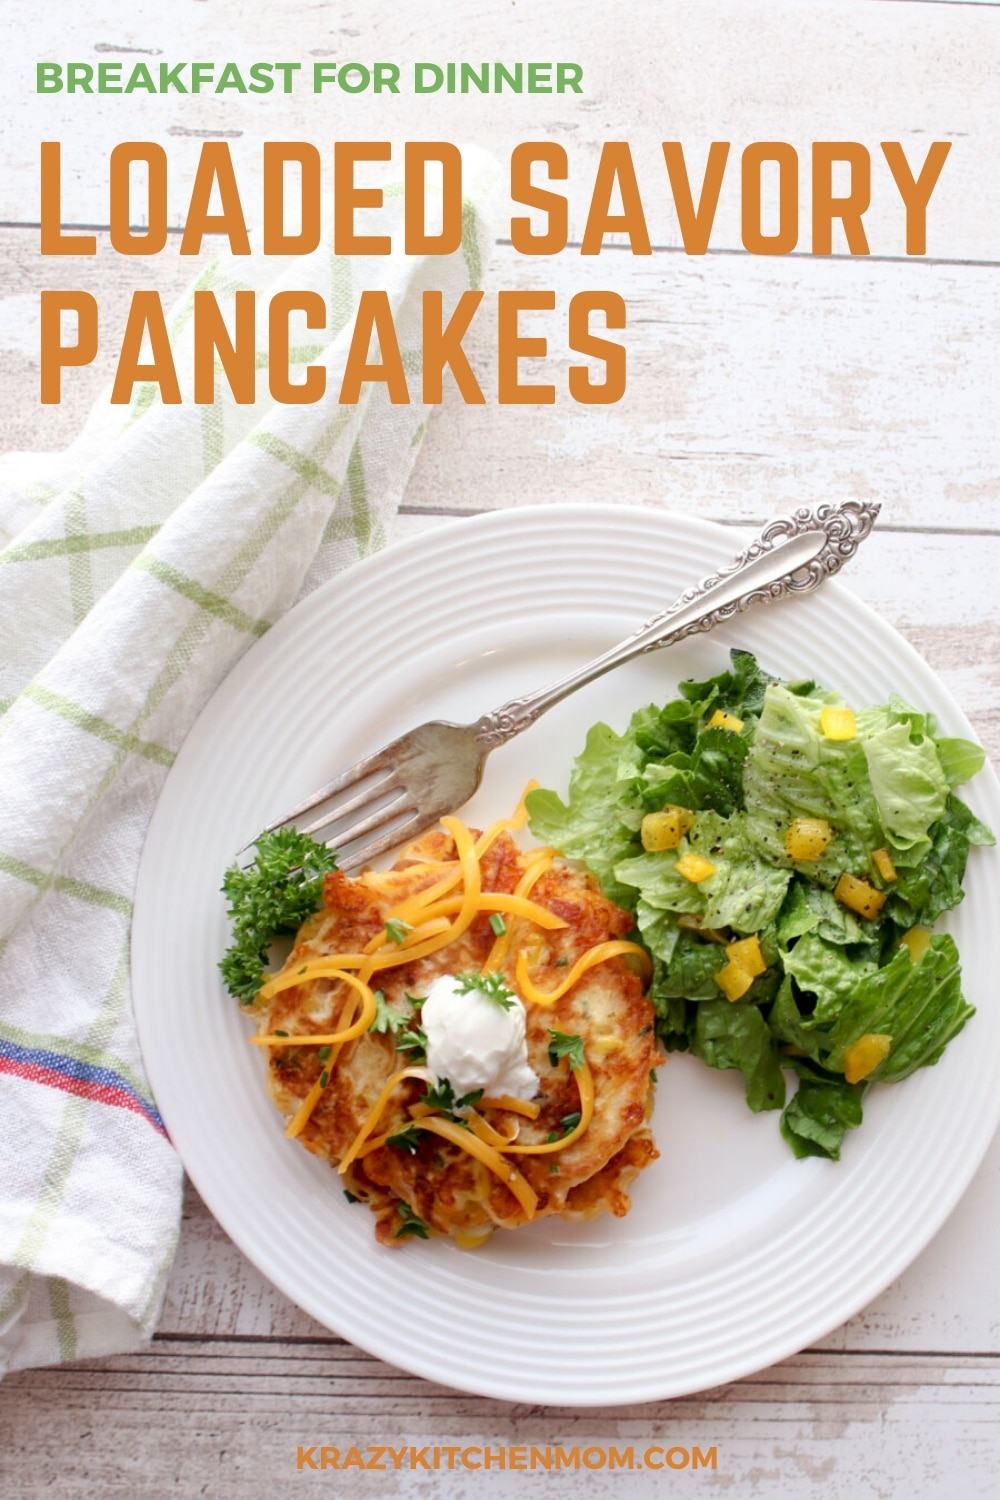 Everyone loves pancakes! And pancakes are great when you're craving breakfast for dinner. Especially with my Loaded Savory Pancakes.  via @krazykitchenmom